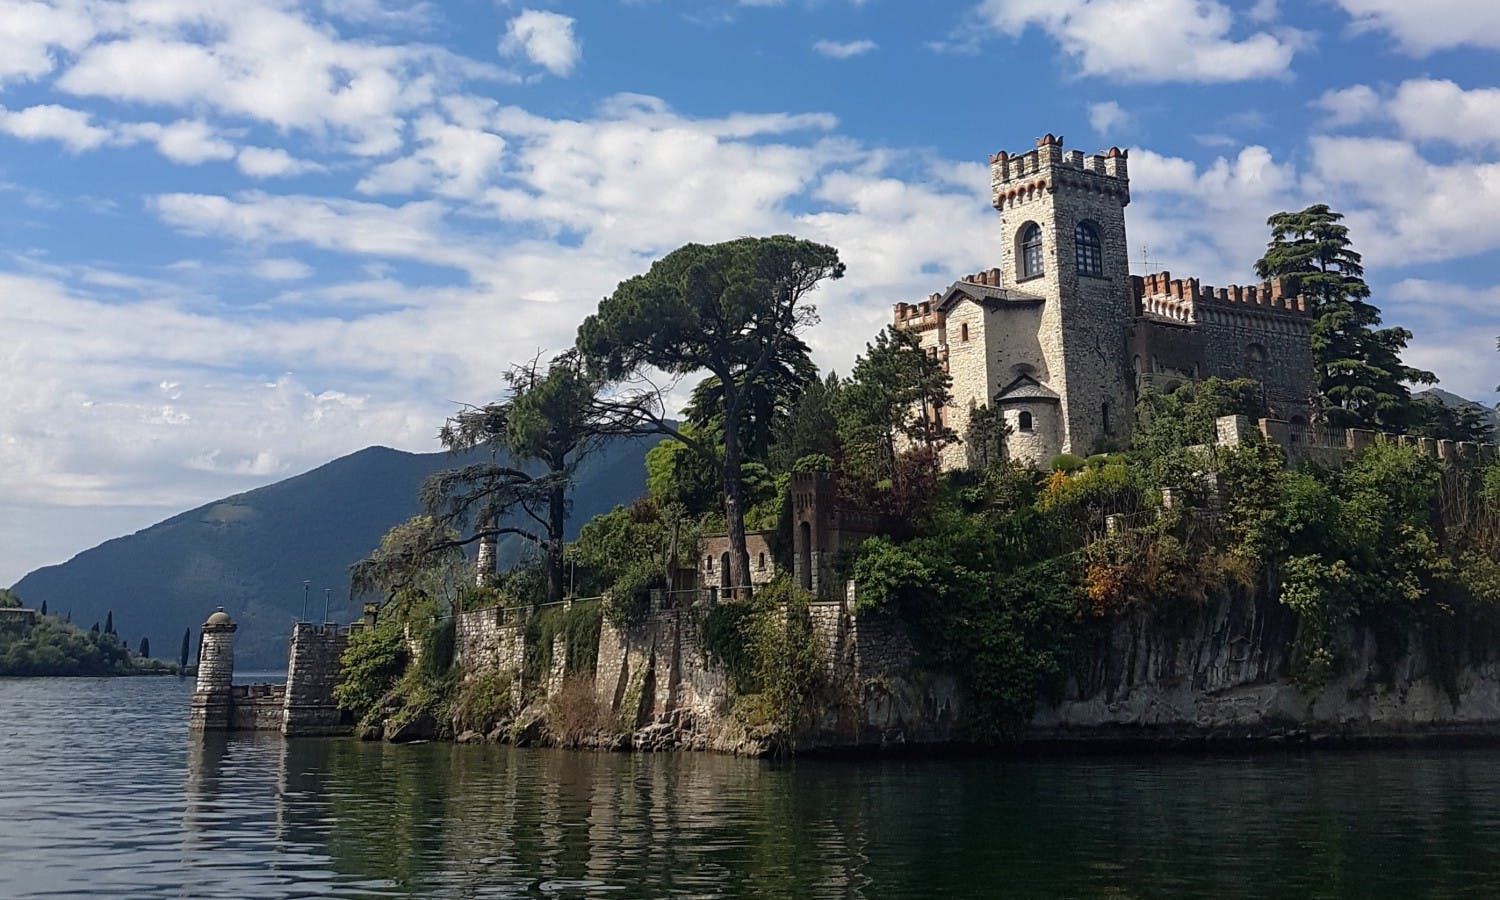 Castello di Bornato, one of Franciacorta's impressive medieval castles / Photo: musement.com